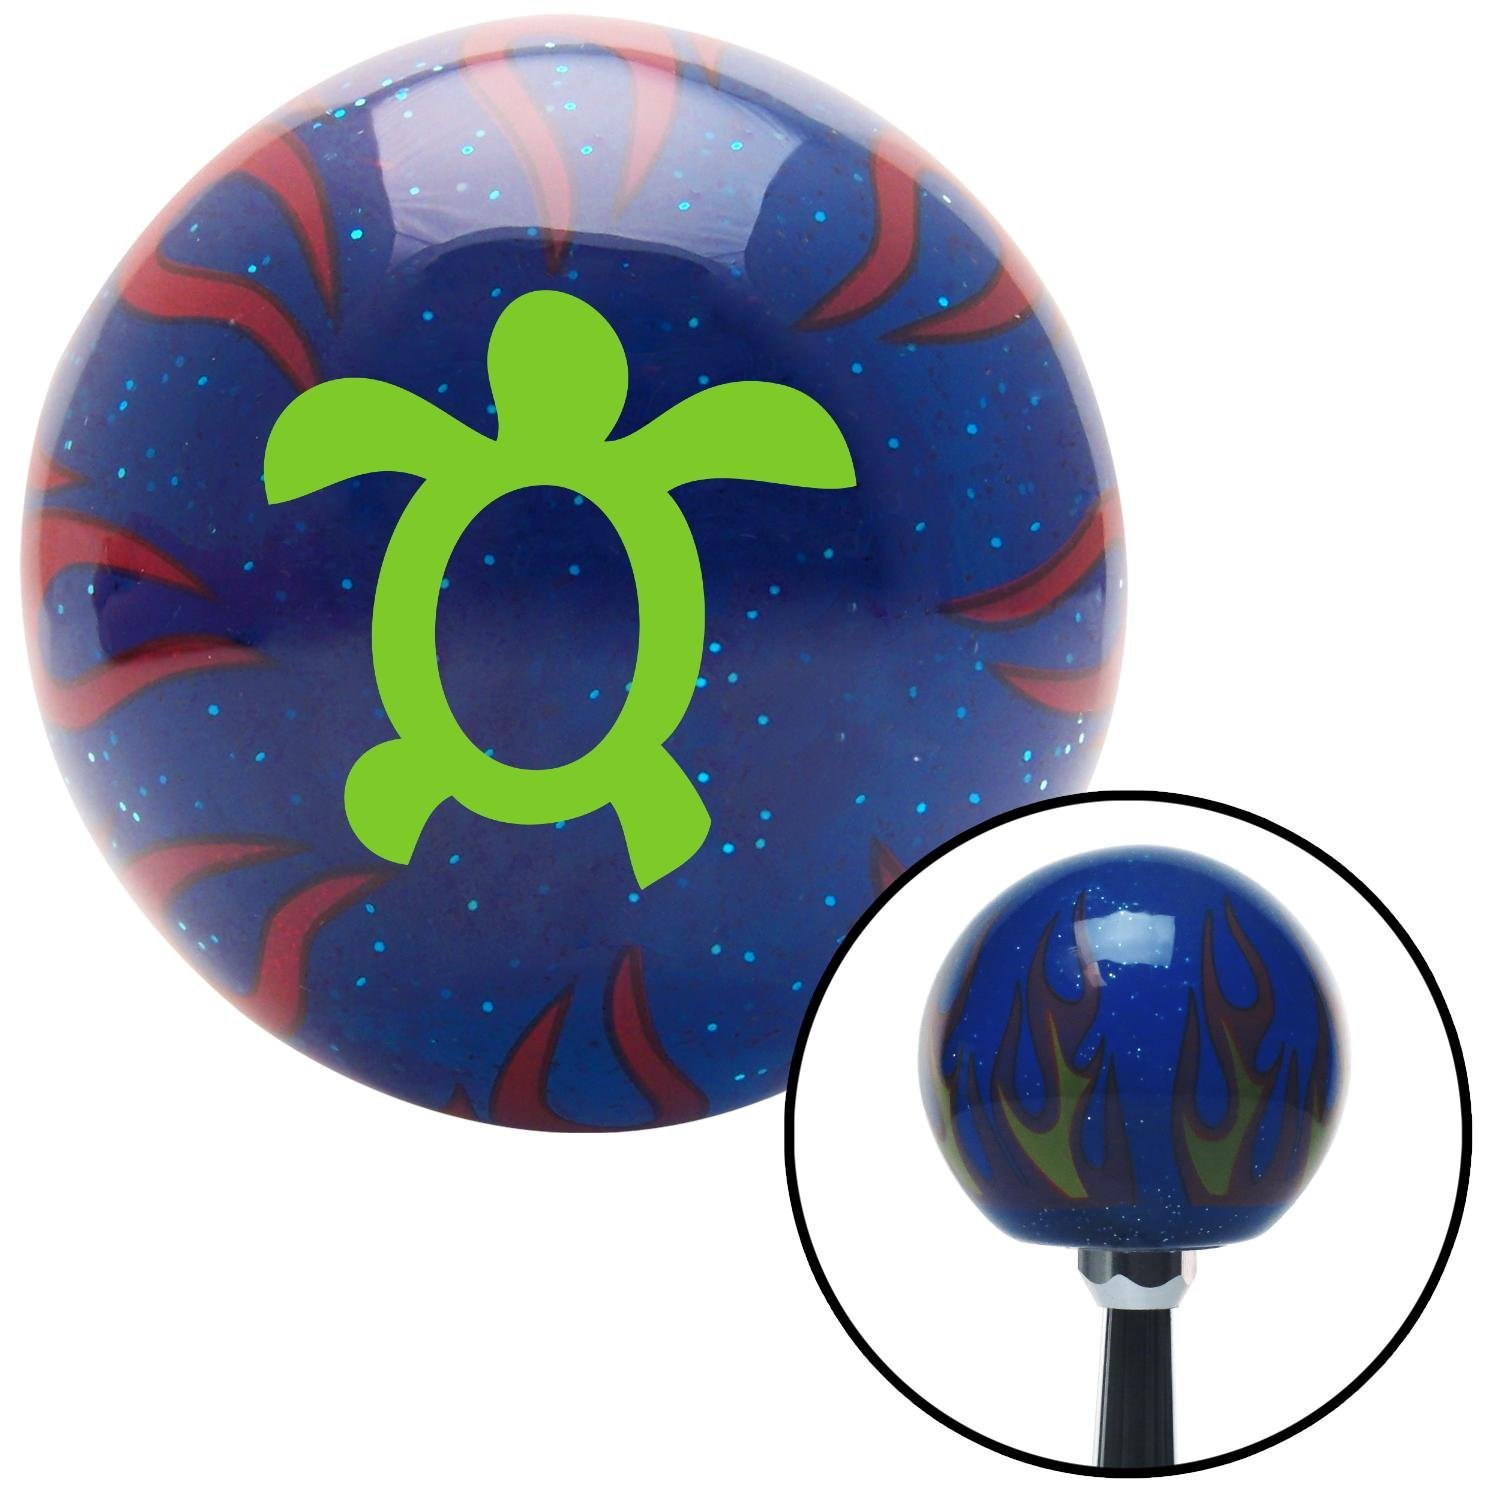 Green Simple Turtle American Shifter 249223 Blue Flame Metal Flake Shift Knob with M16 x 1.5 Insert